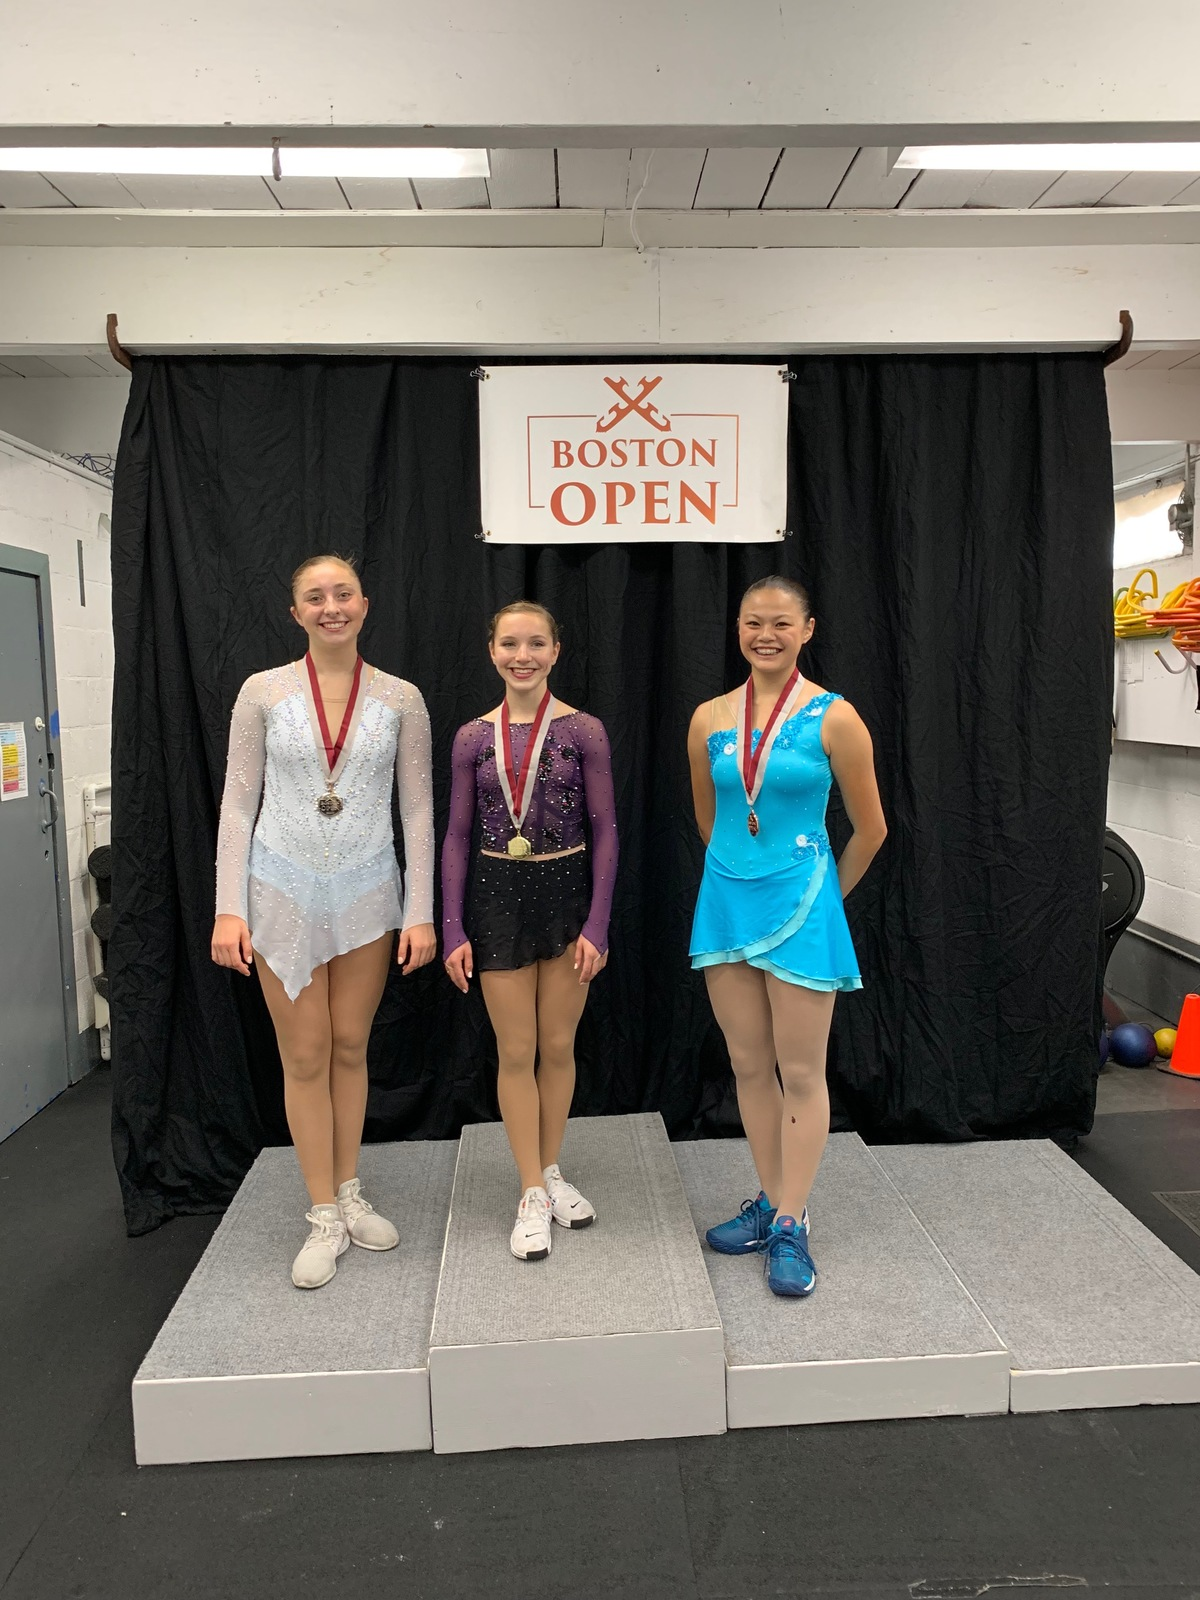 Figure skater Sophia Ying '22 wins Bronze medal at Boston Open